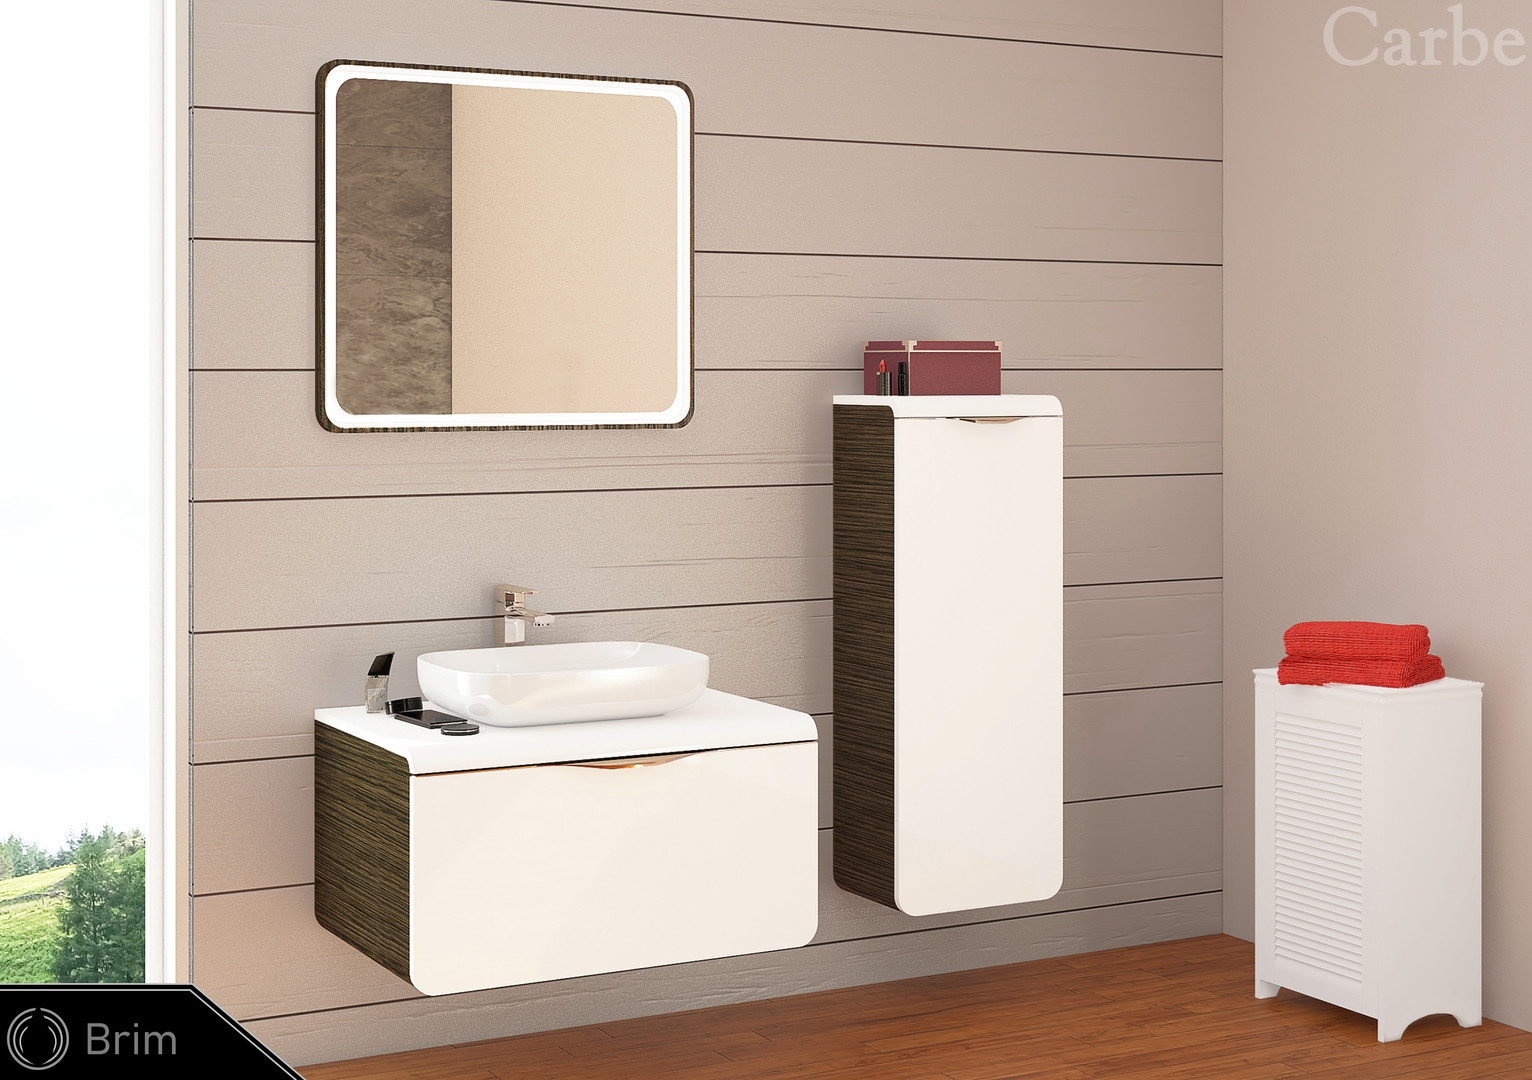 Brim - Gold Venge HG, Arctic White HG, Ceramic Washbasin, Soft Closing